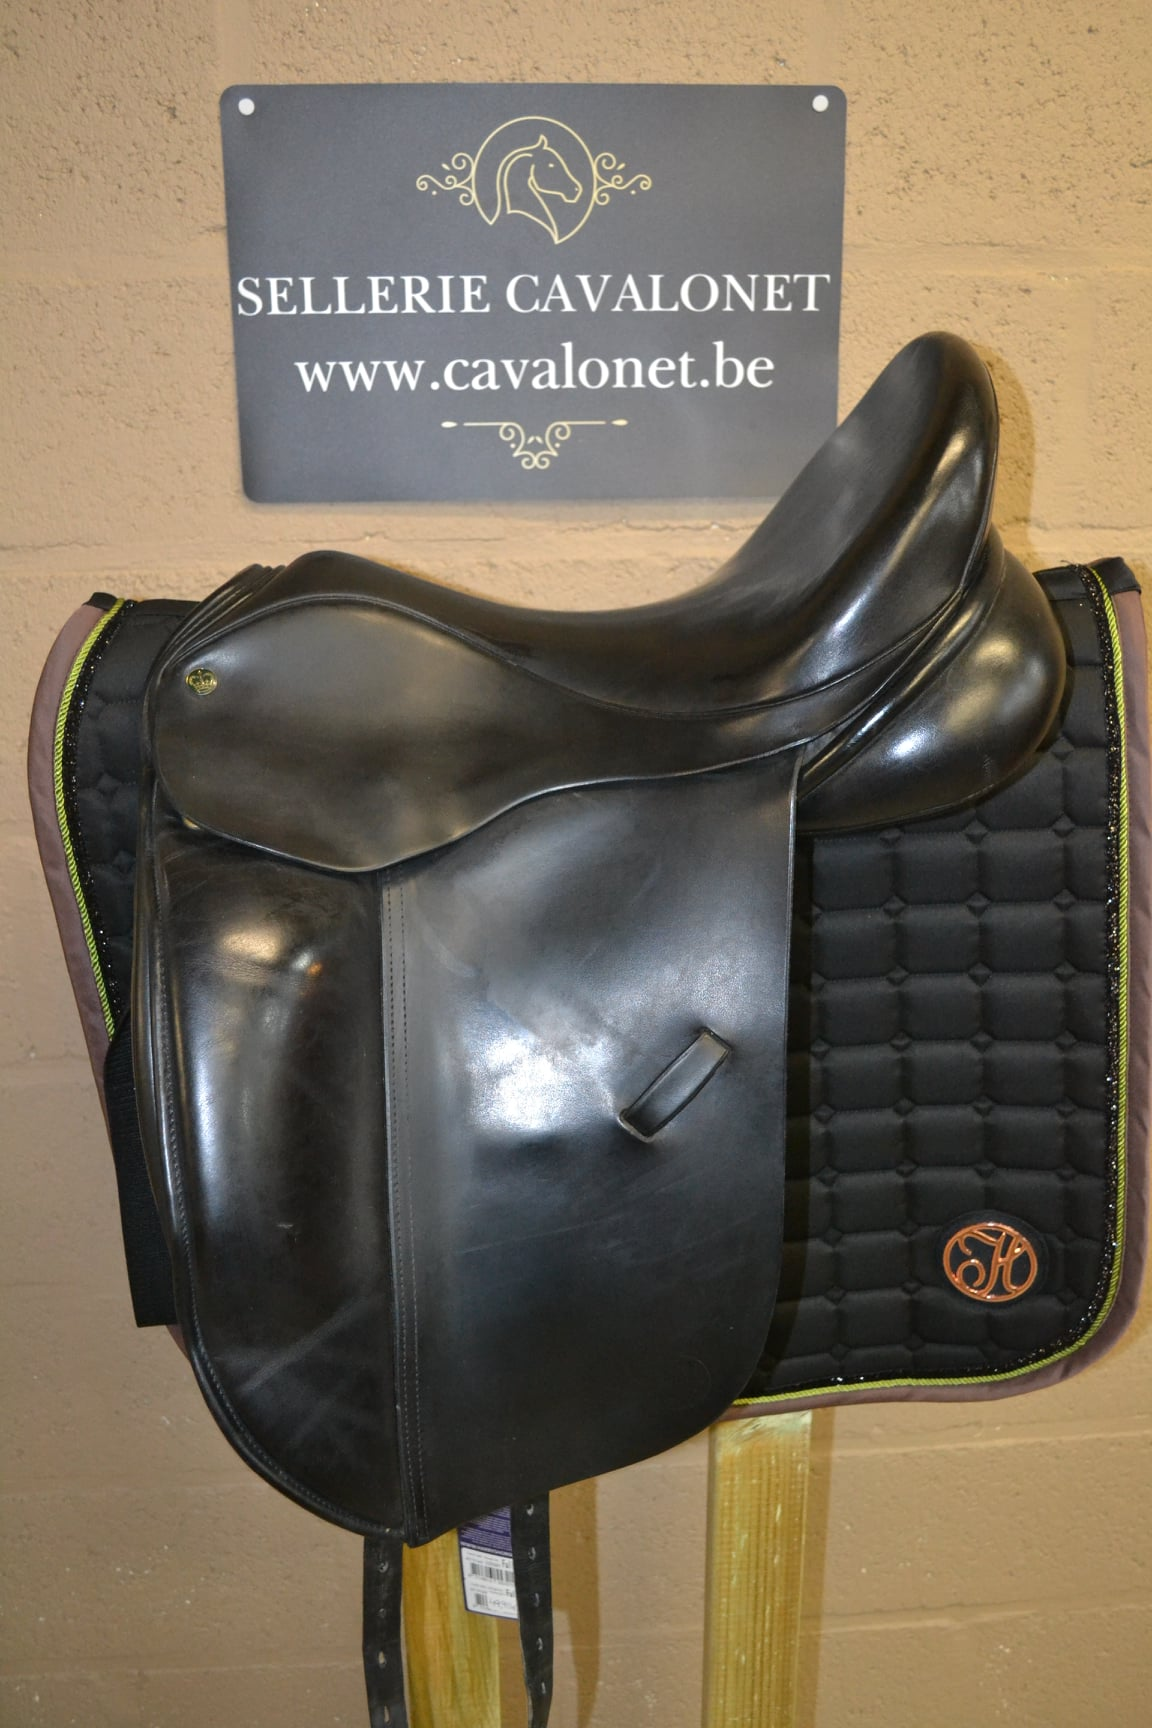 Selle Crown Saddlery